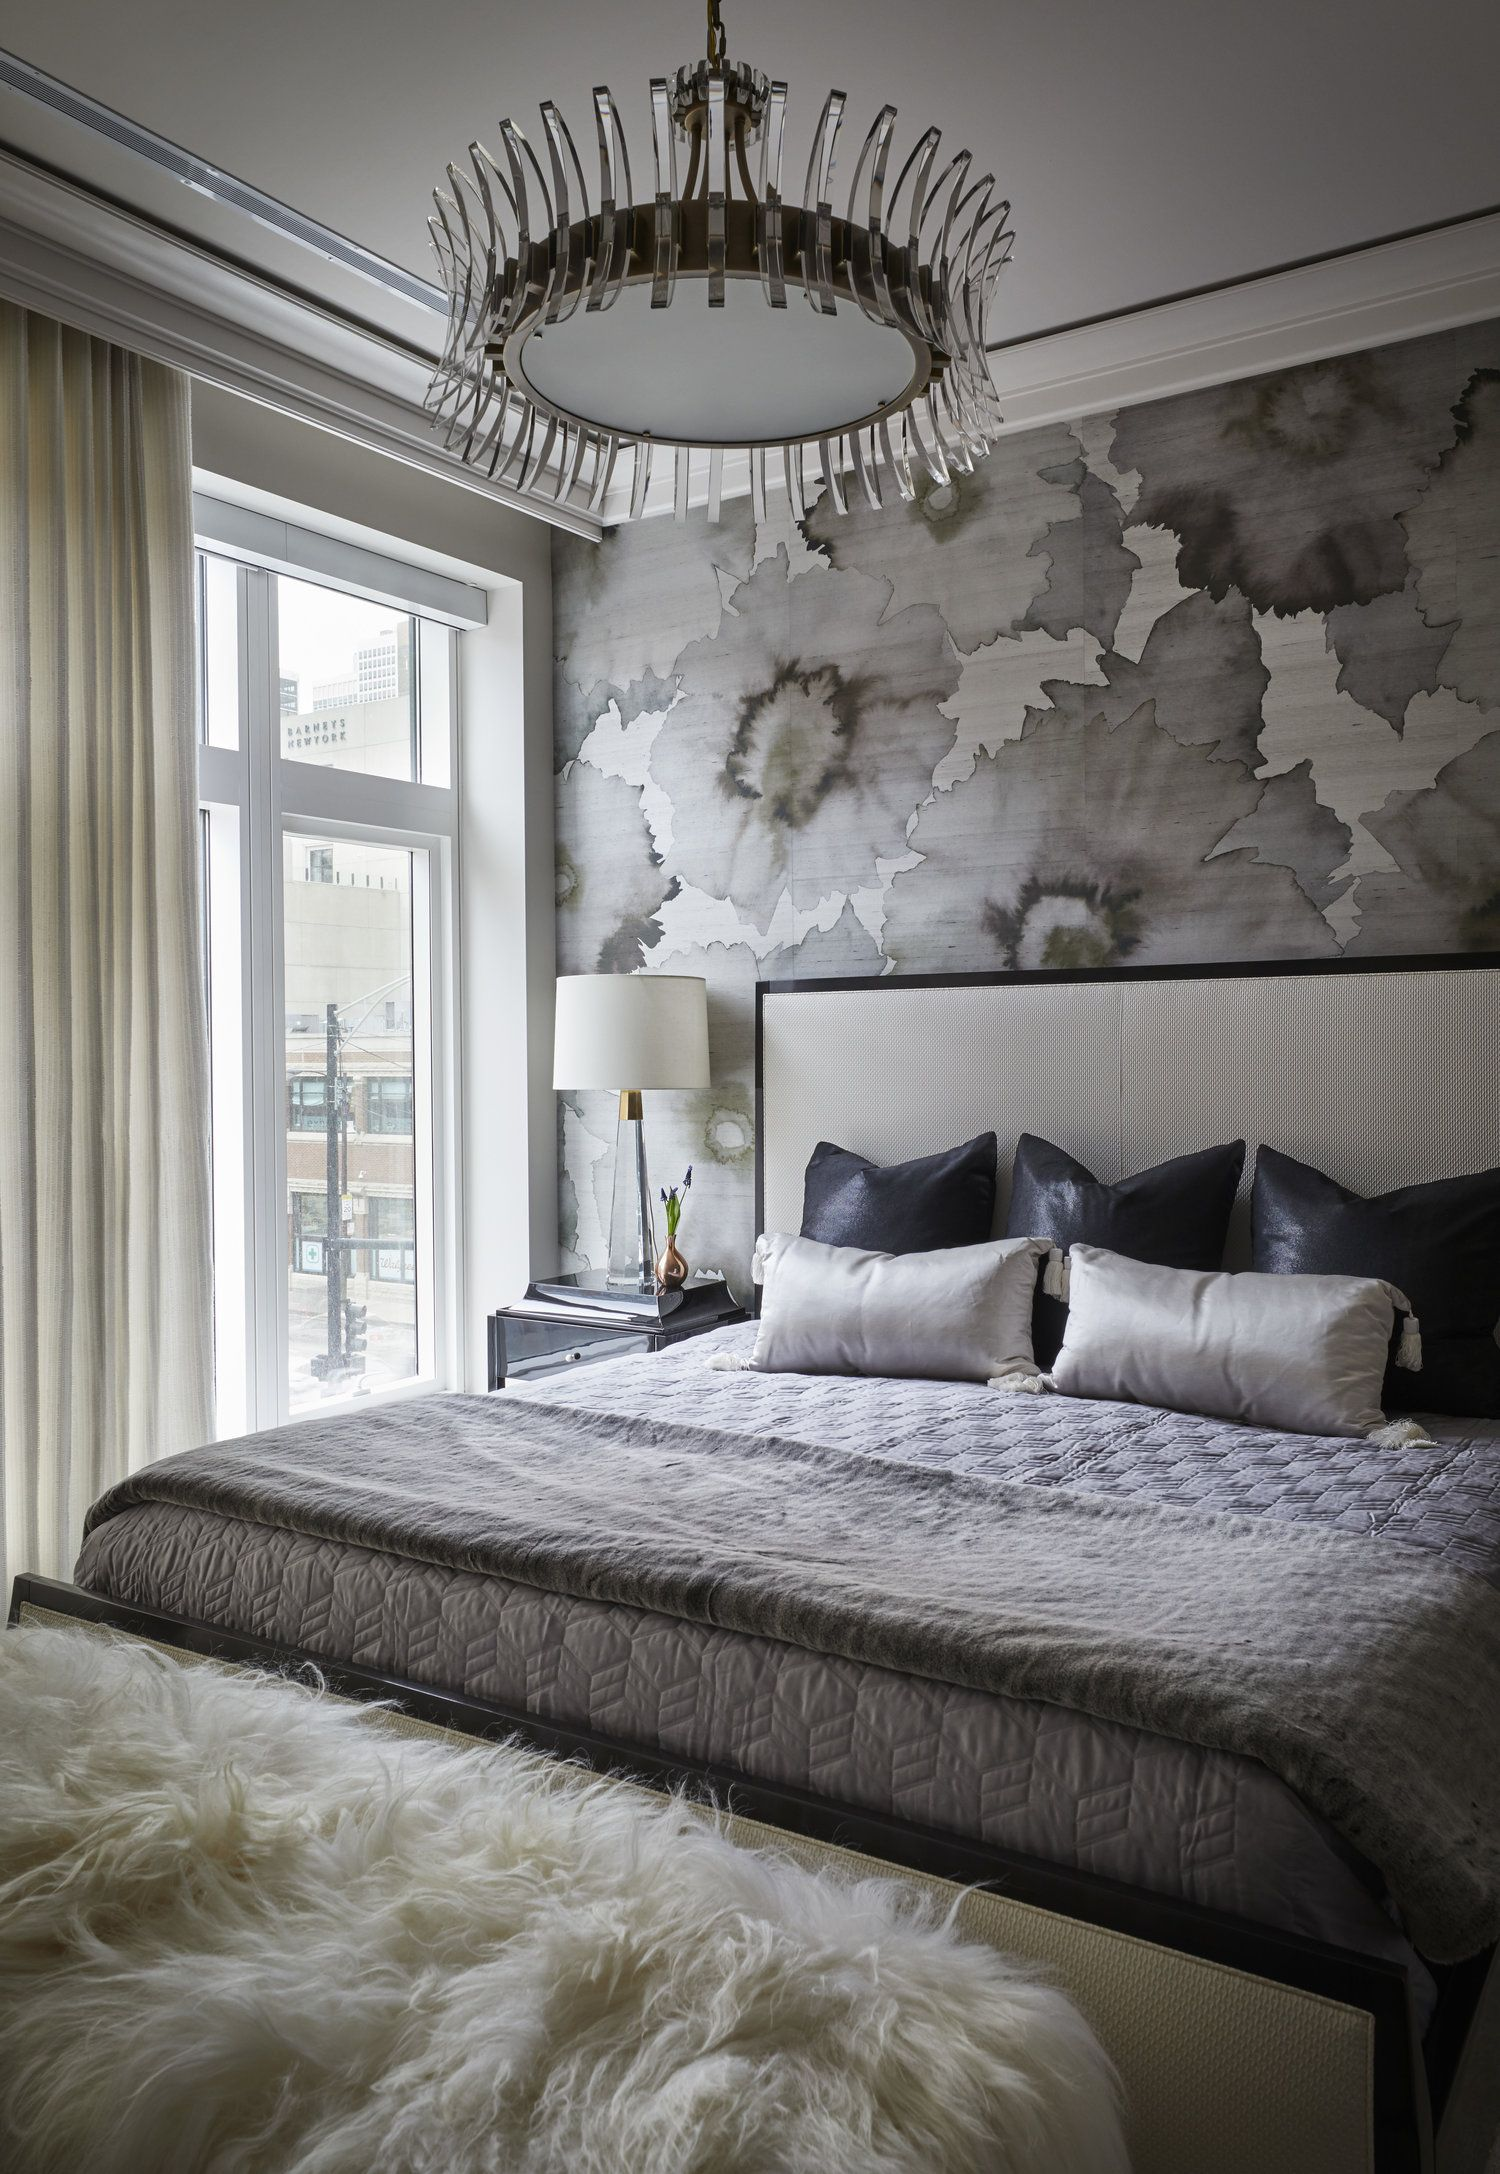 MODERN SOPHISTICATED CONDO | Chic and fashion forward master bedroom ...